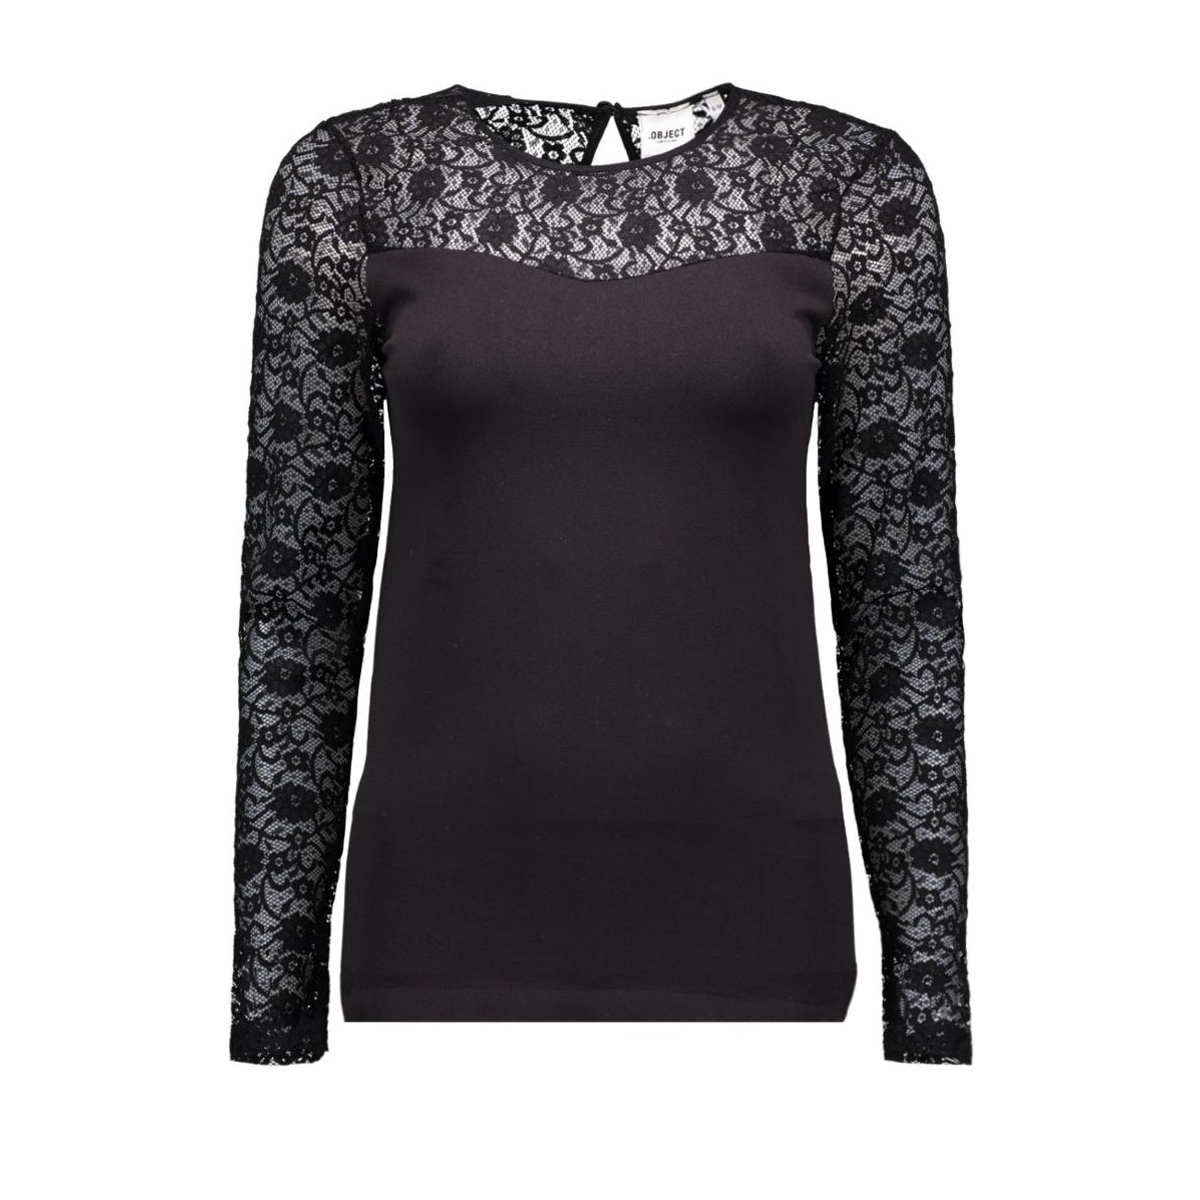 objlip lace l/s top noos 23021782 object t-shirt black